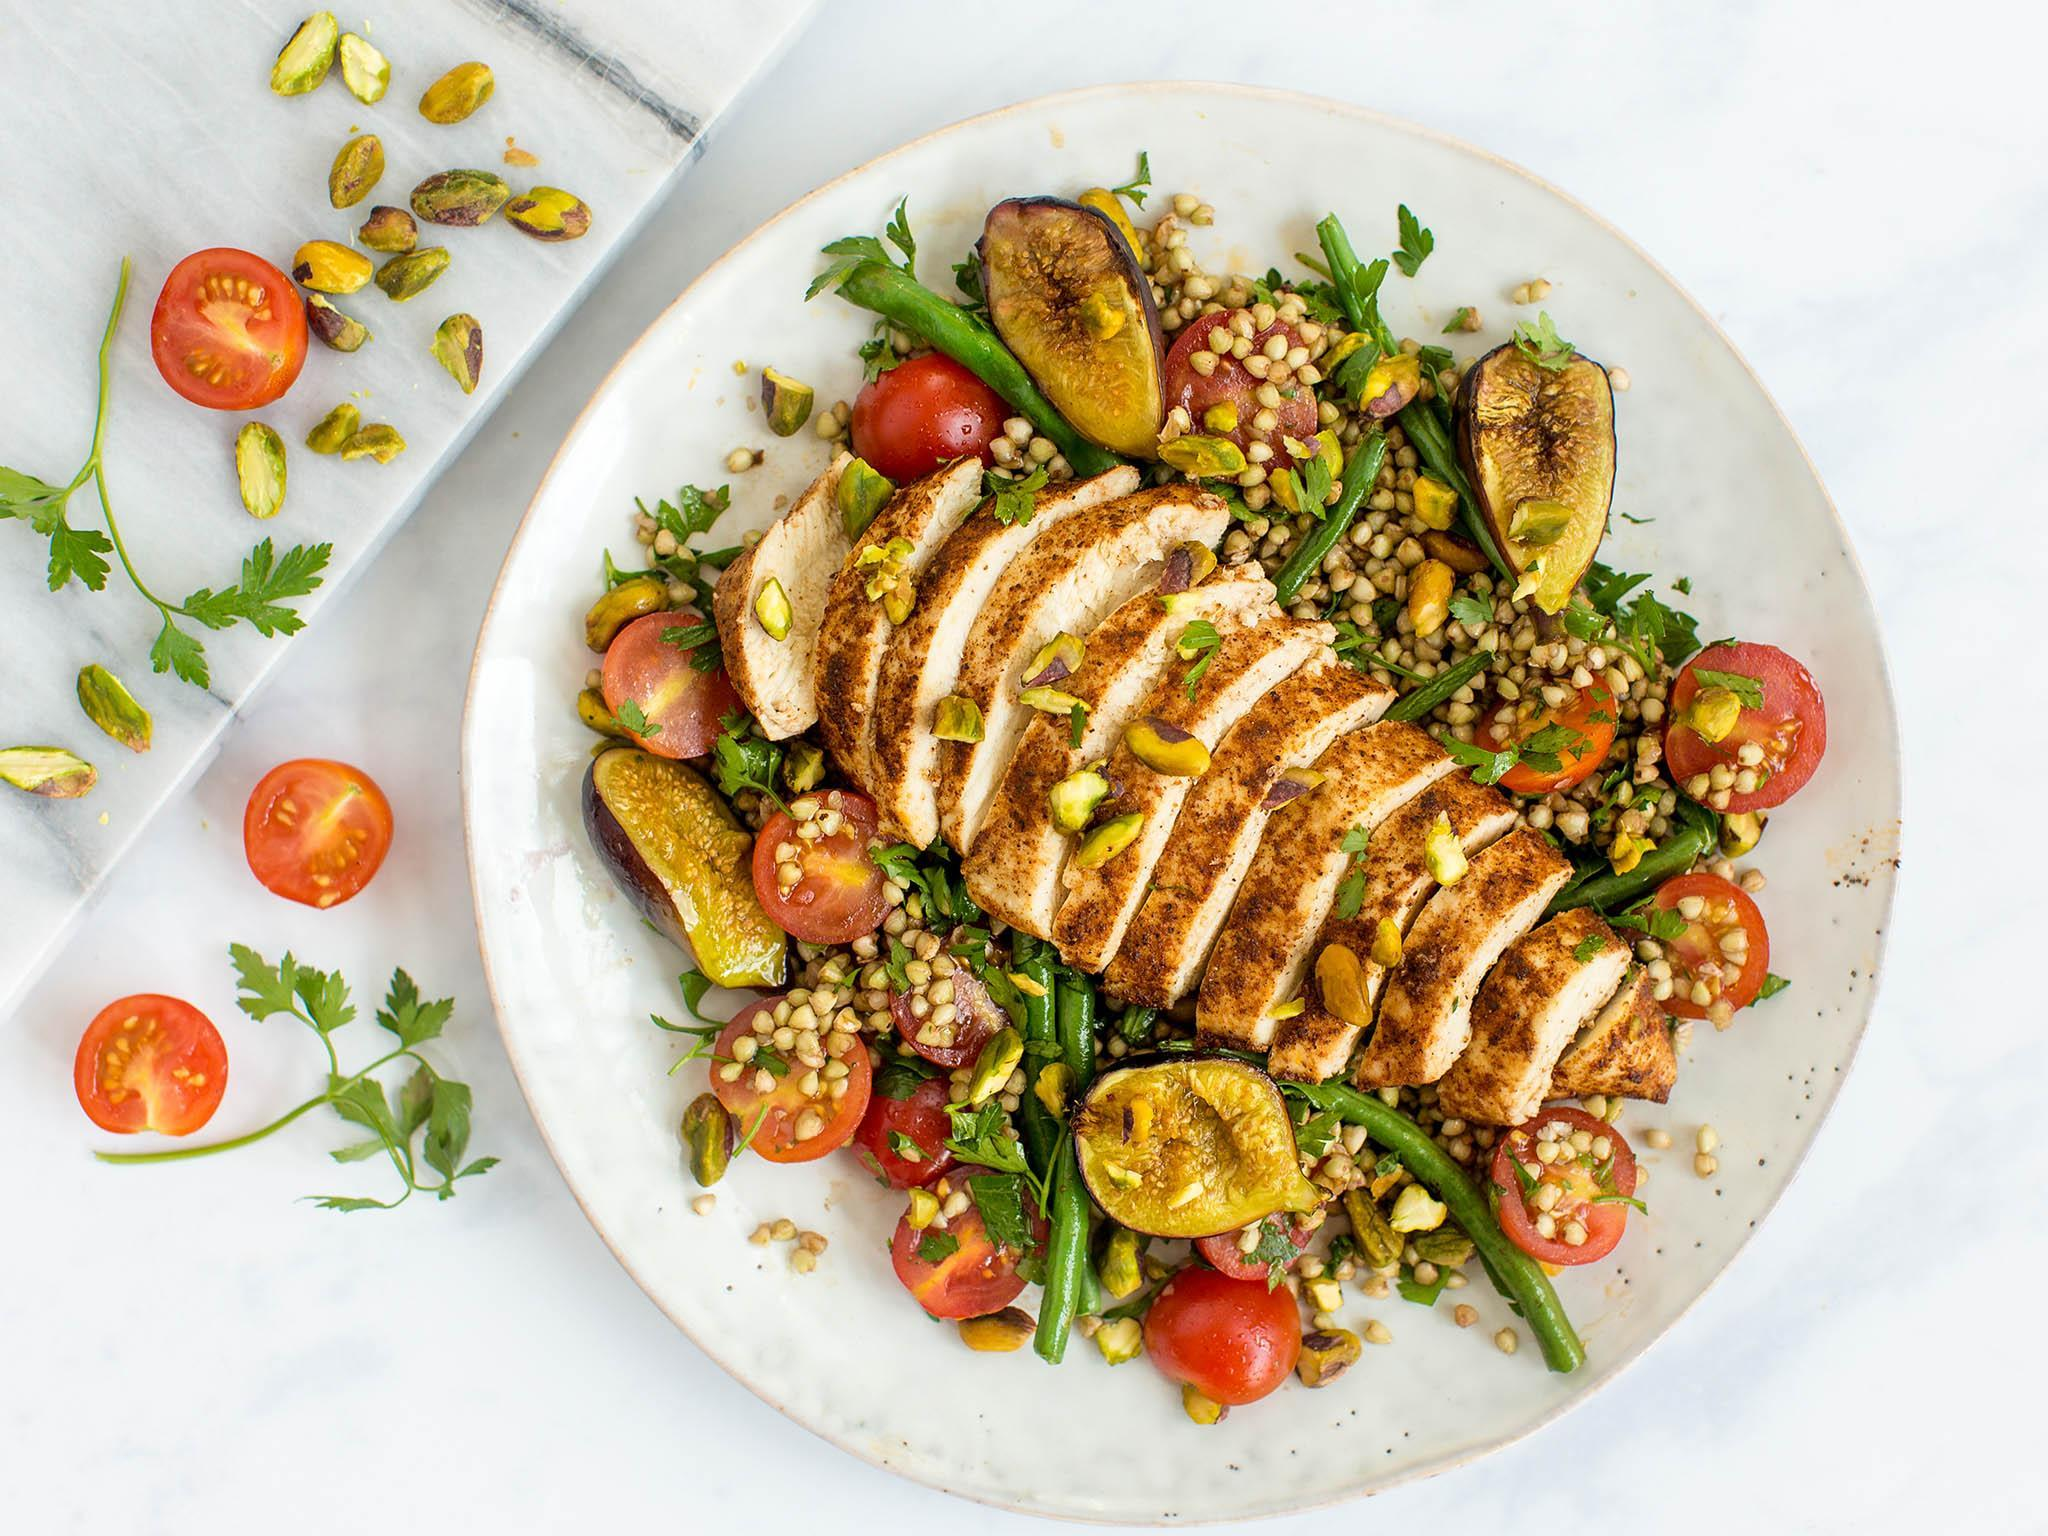 How to make baharat chicken, figs and pistachio buckwheat 1